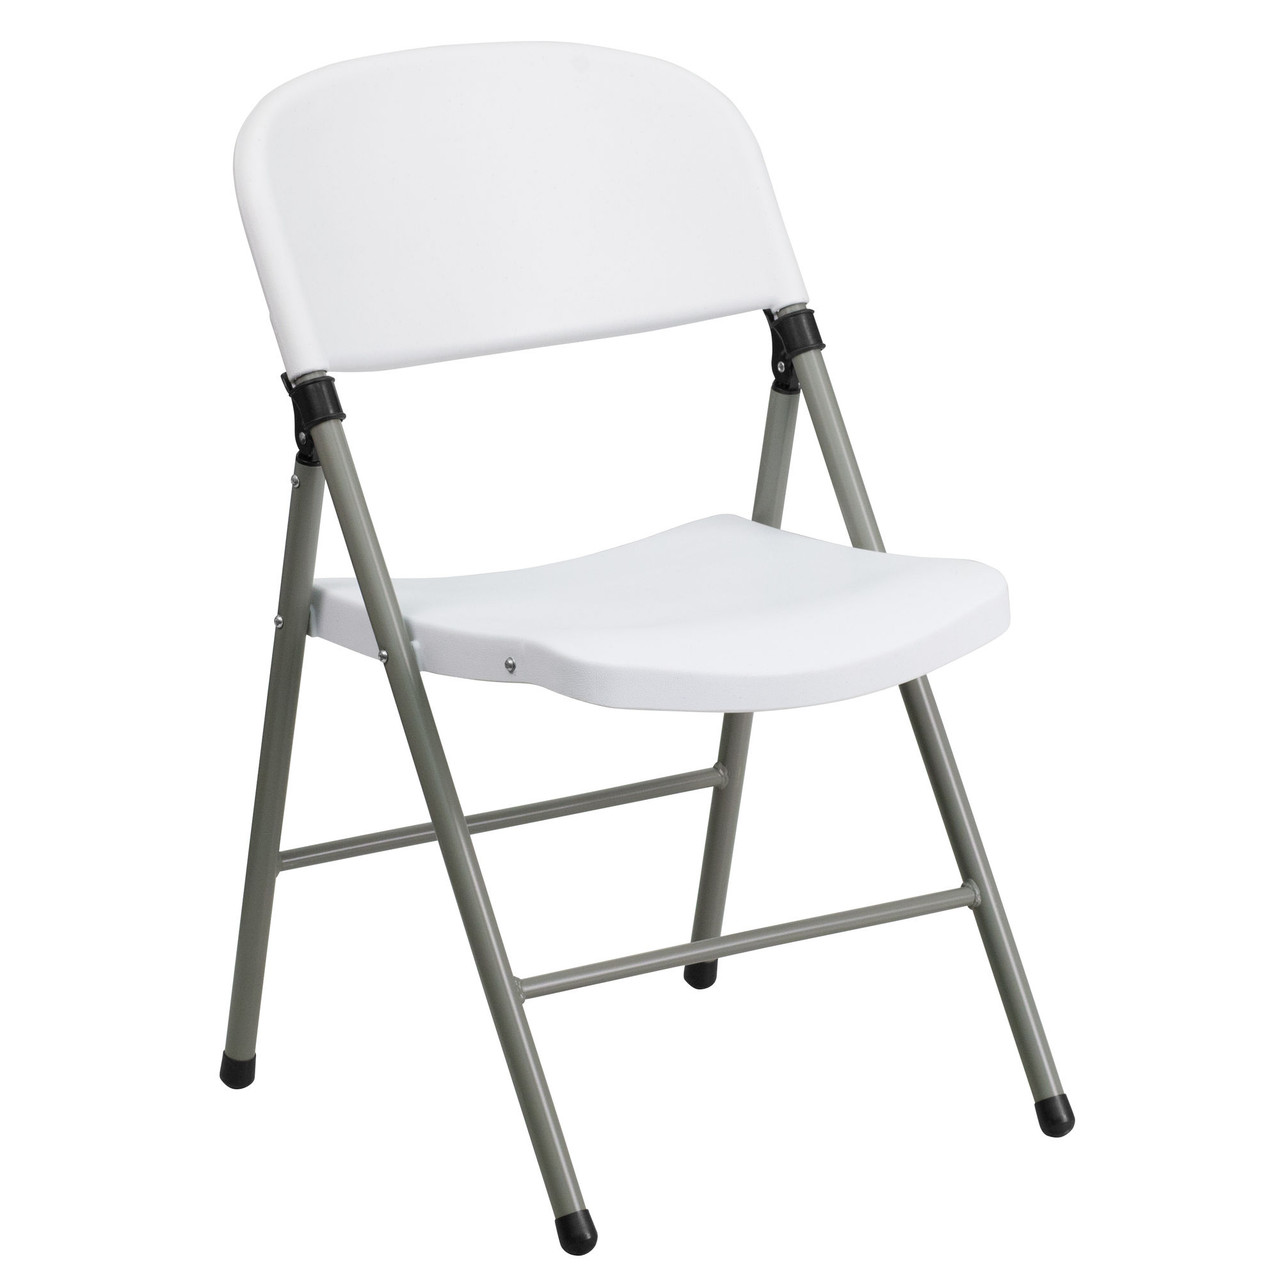 Advantage White Poly Folding Chair Oversized With Gray Frame Dad Ycd 70 Wh Gg